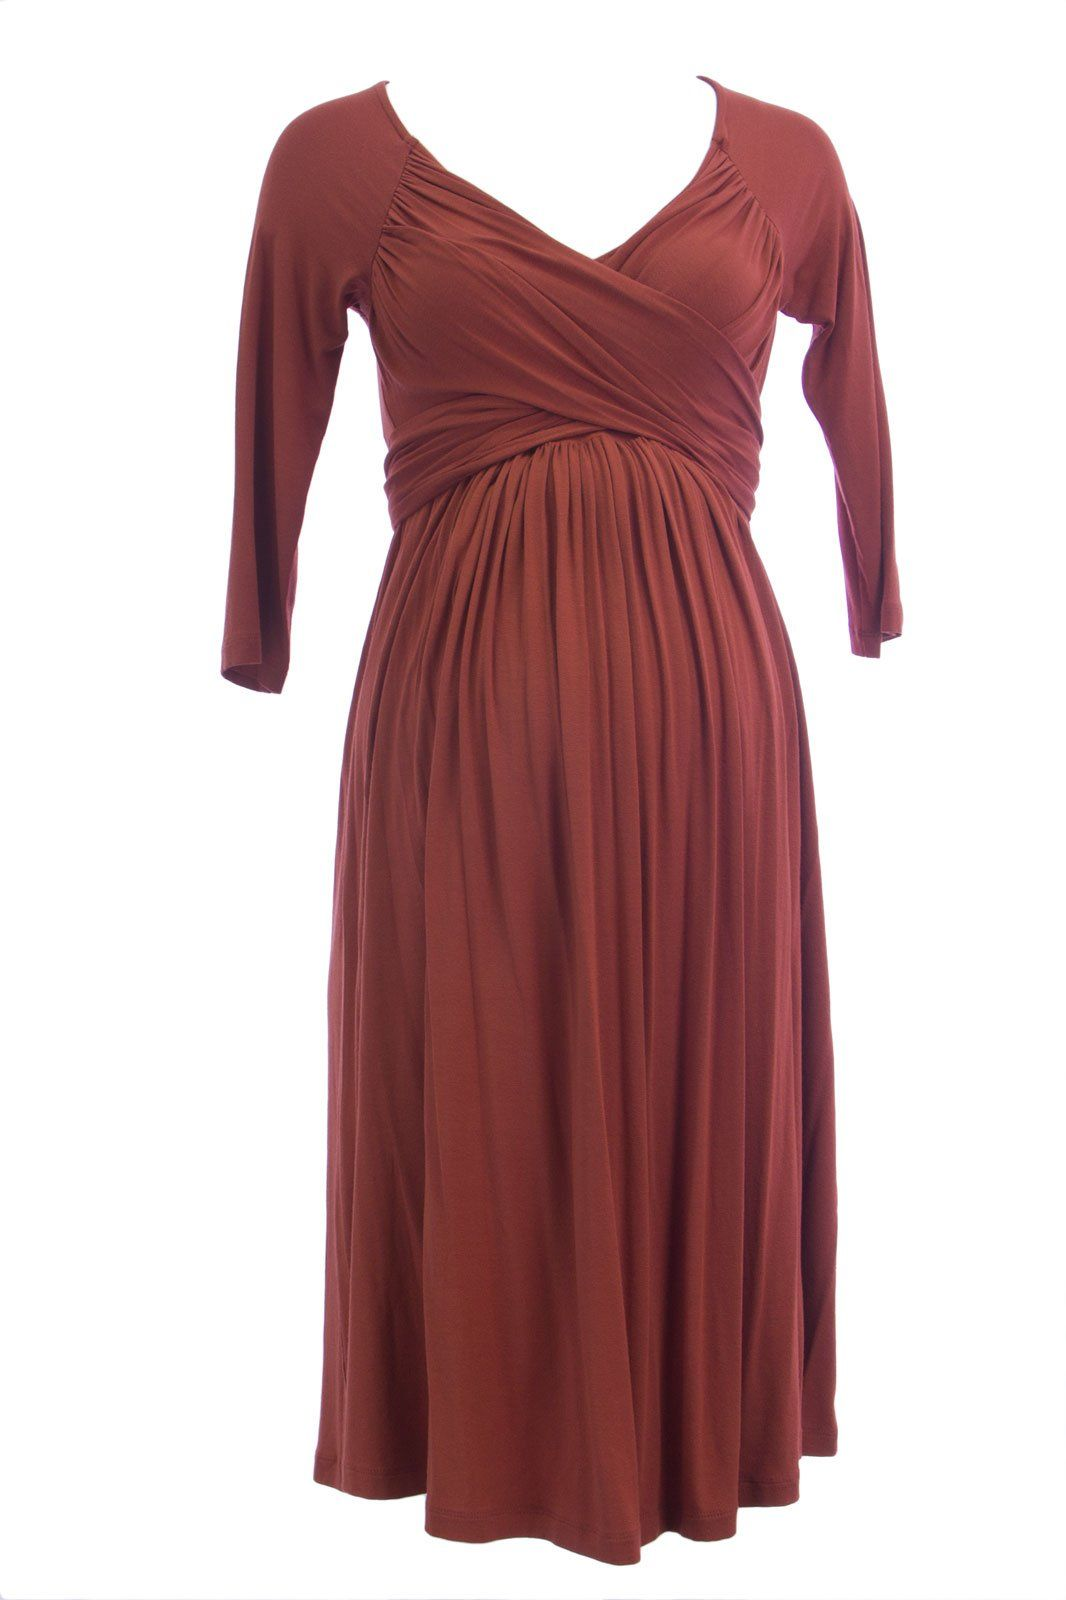 e322e7f9cb3e1 Maternity Dresses - Olian Maternity Womens Wrap Around Sash 3/4 Sleeve Dress  XSmall Rust ** Find out more at the picture link. (This is an affiliate  link).